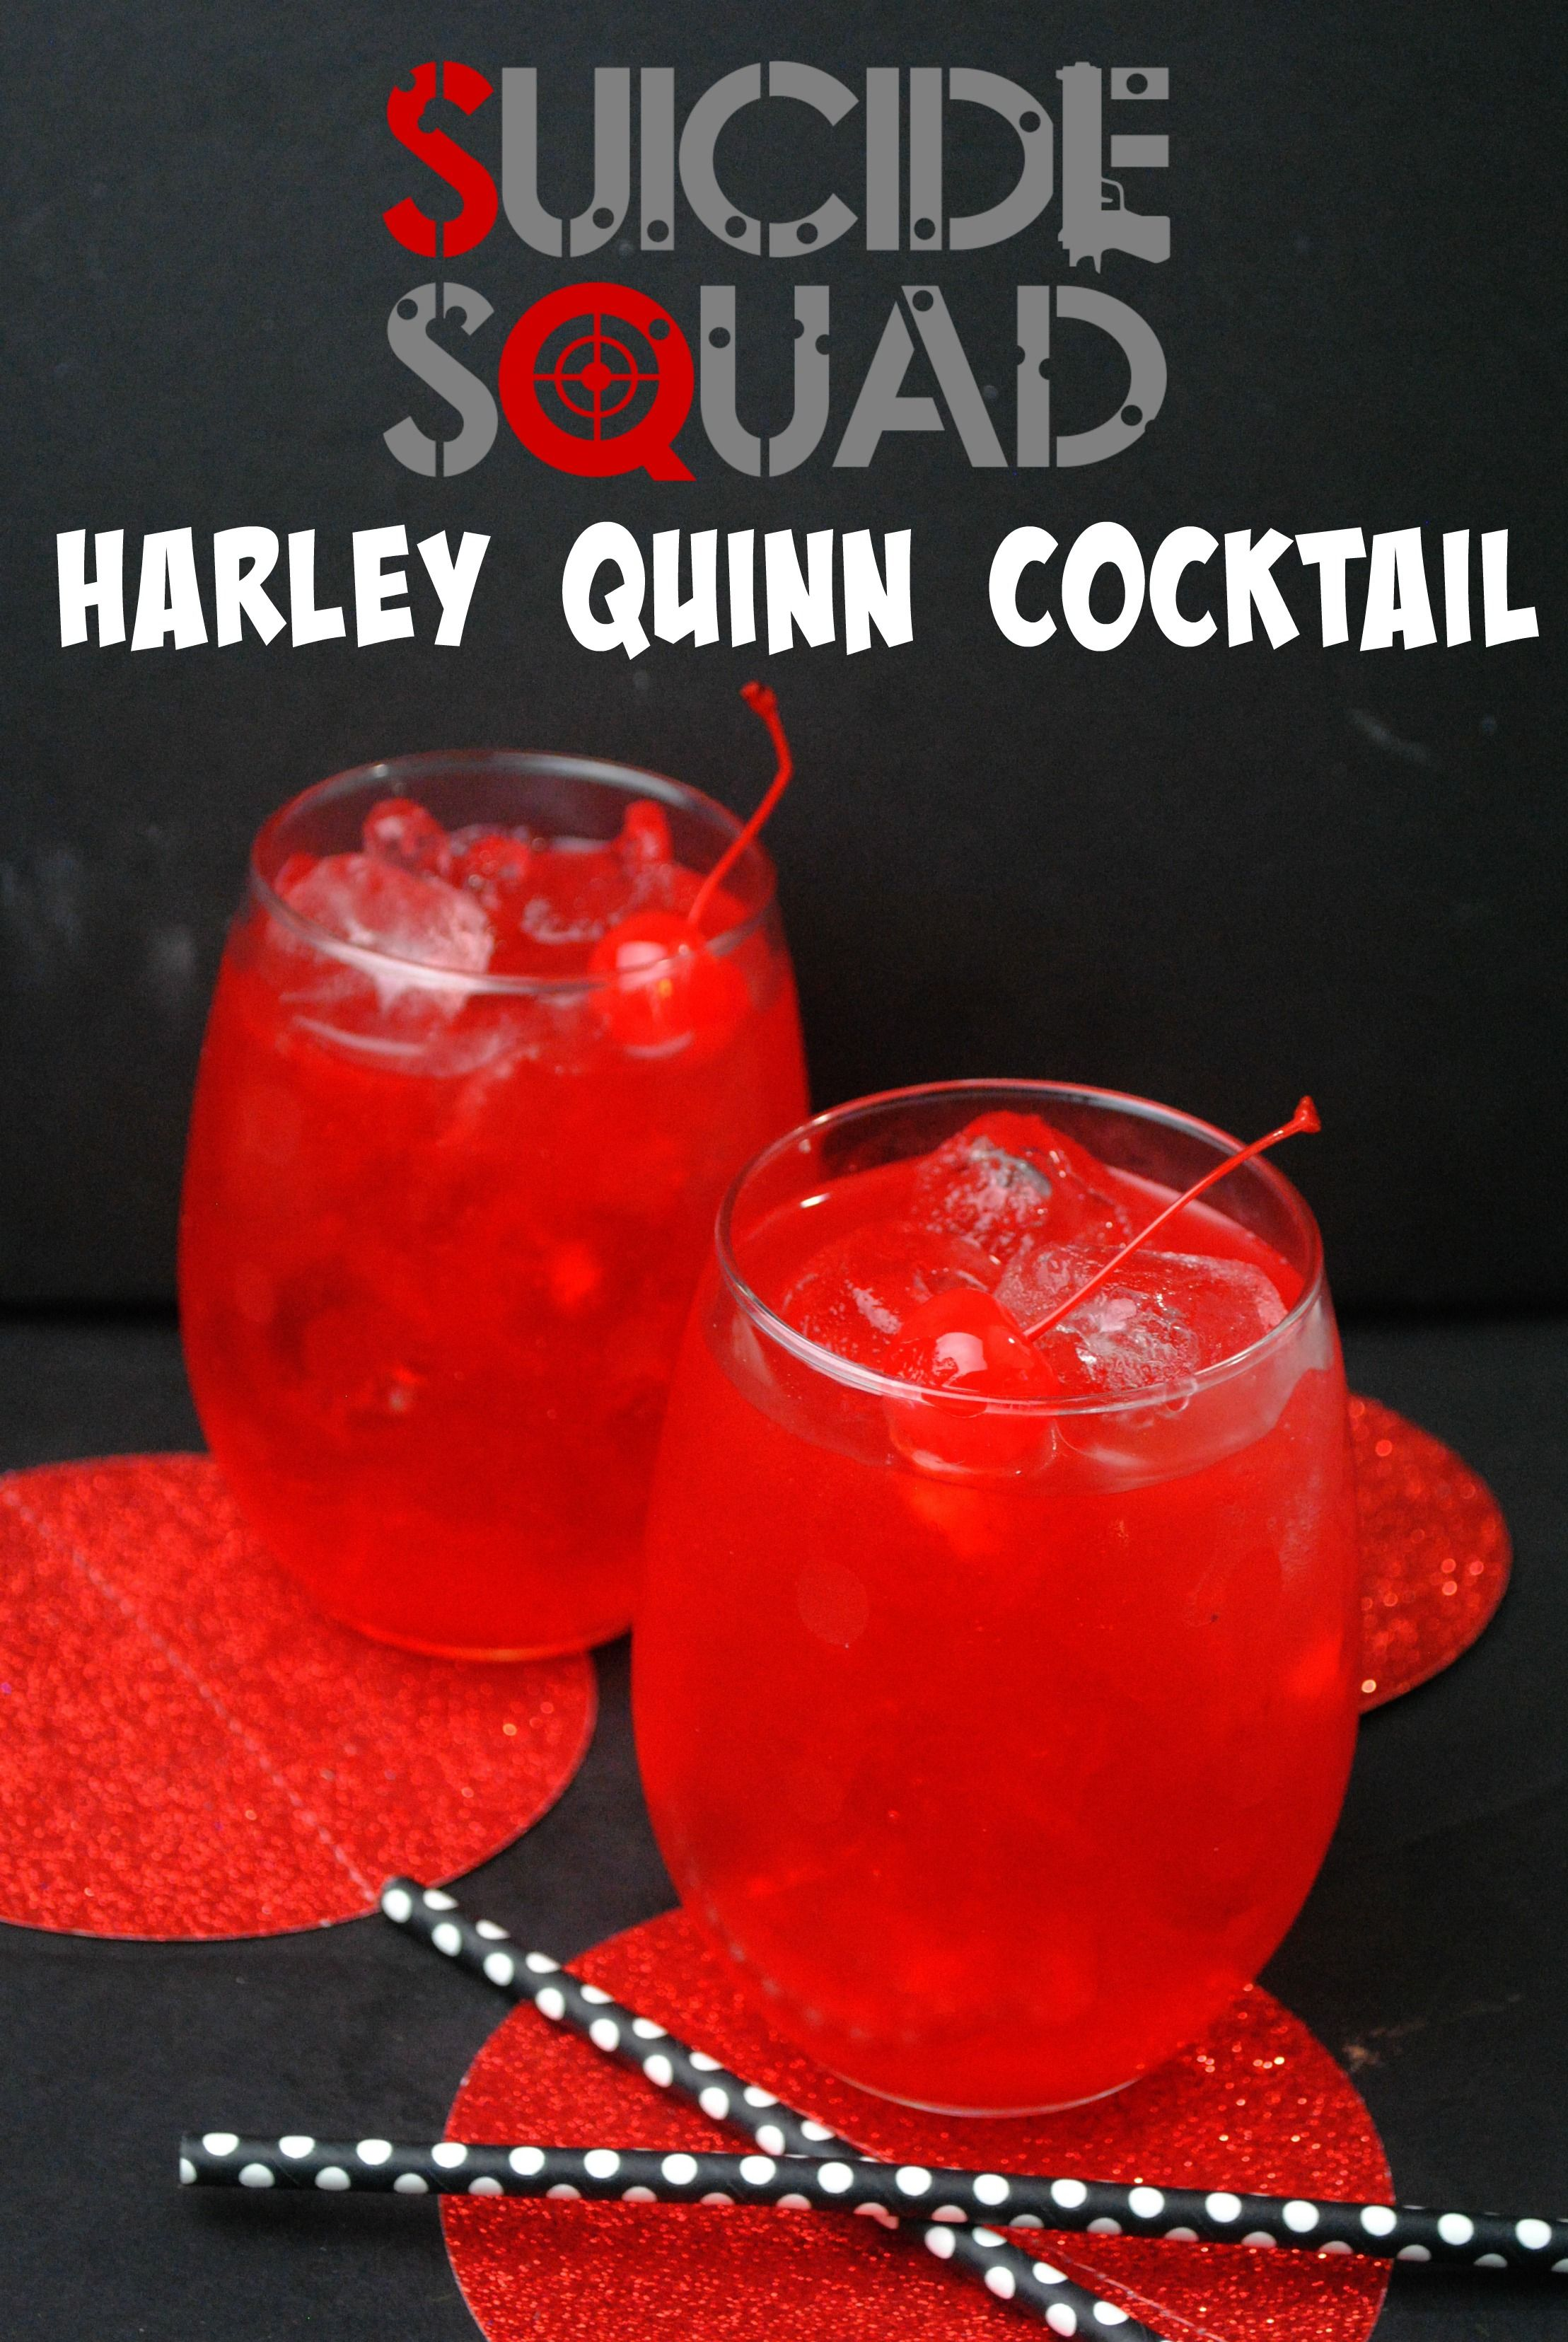 Our Harley Quinn cocktail is a great, fruity, rum punch